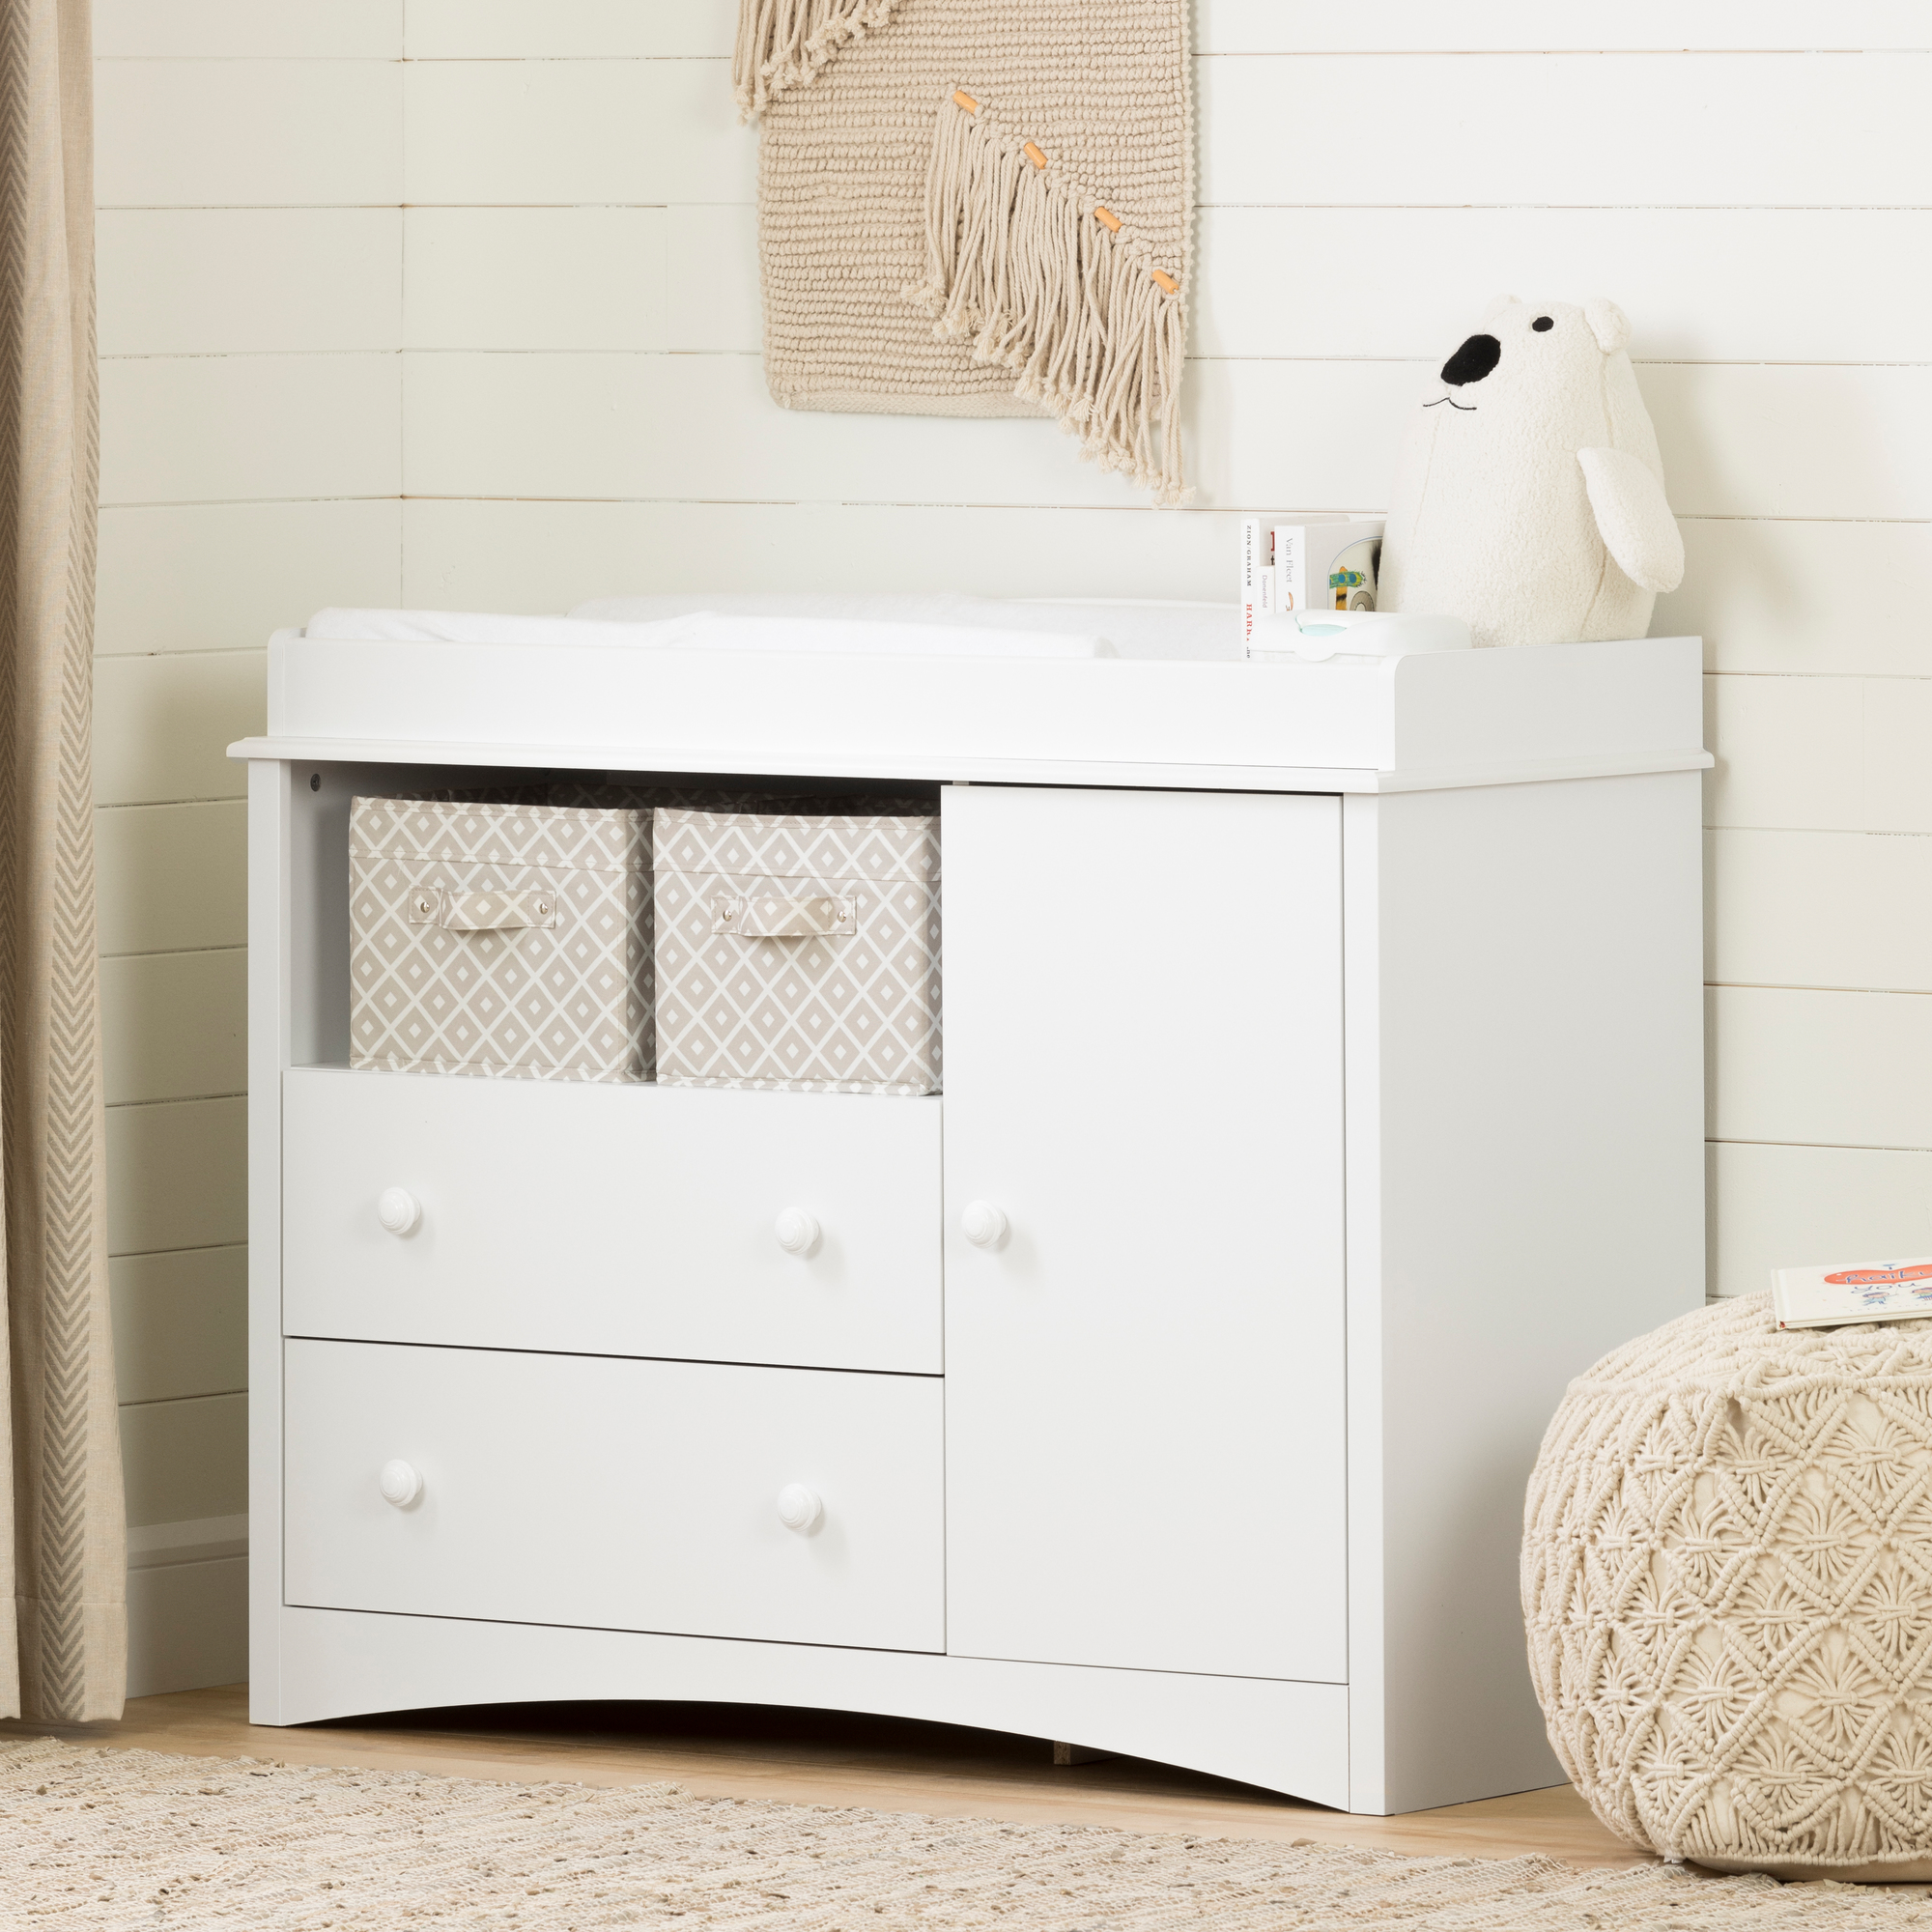 South Shore Peak-a-boo Changing Table, White